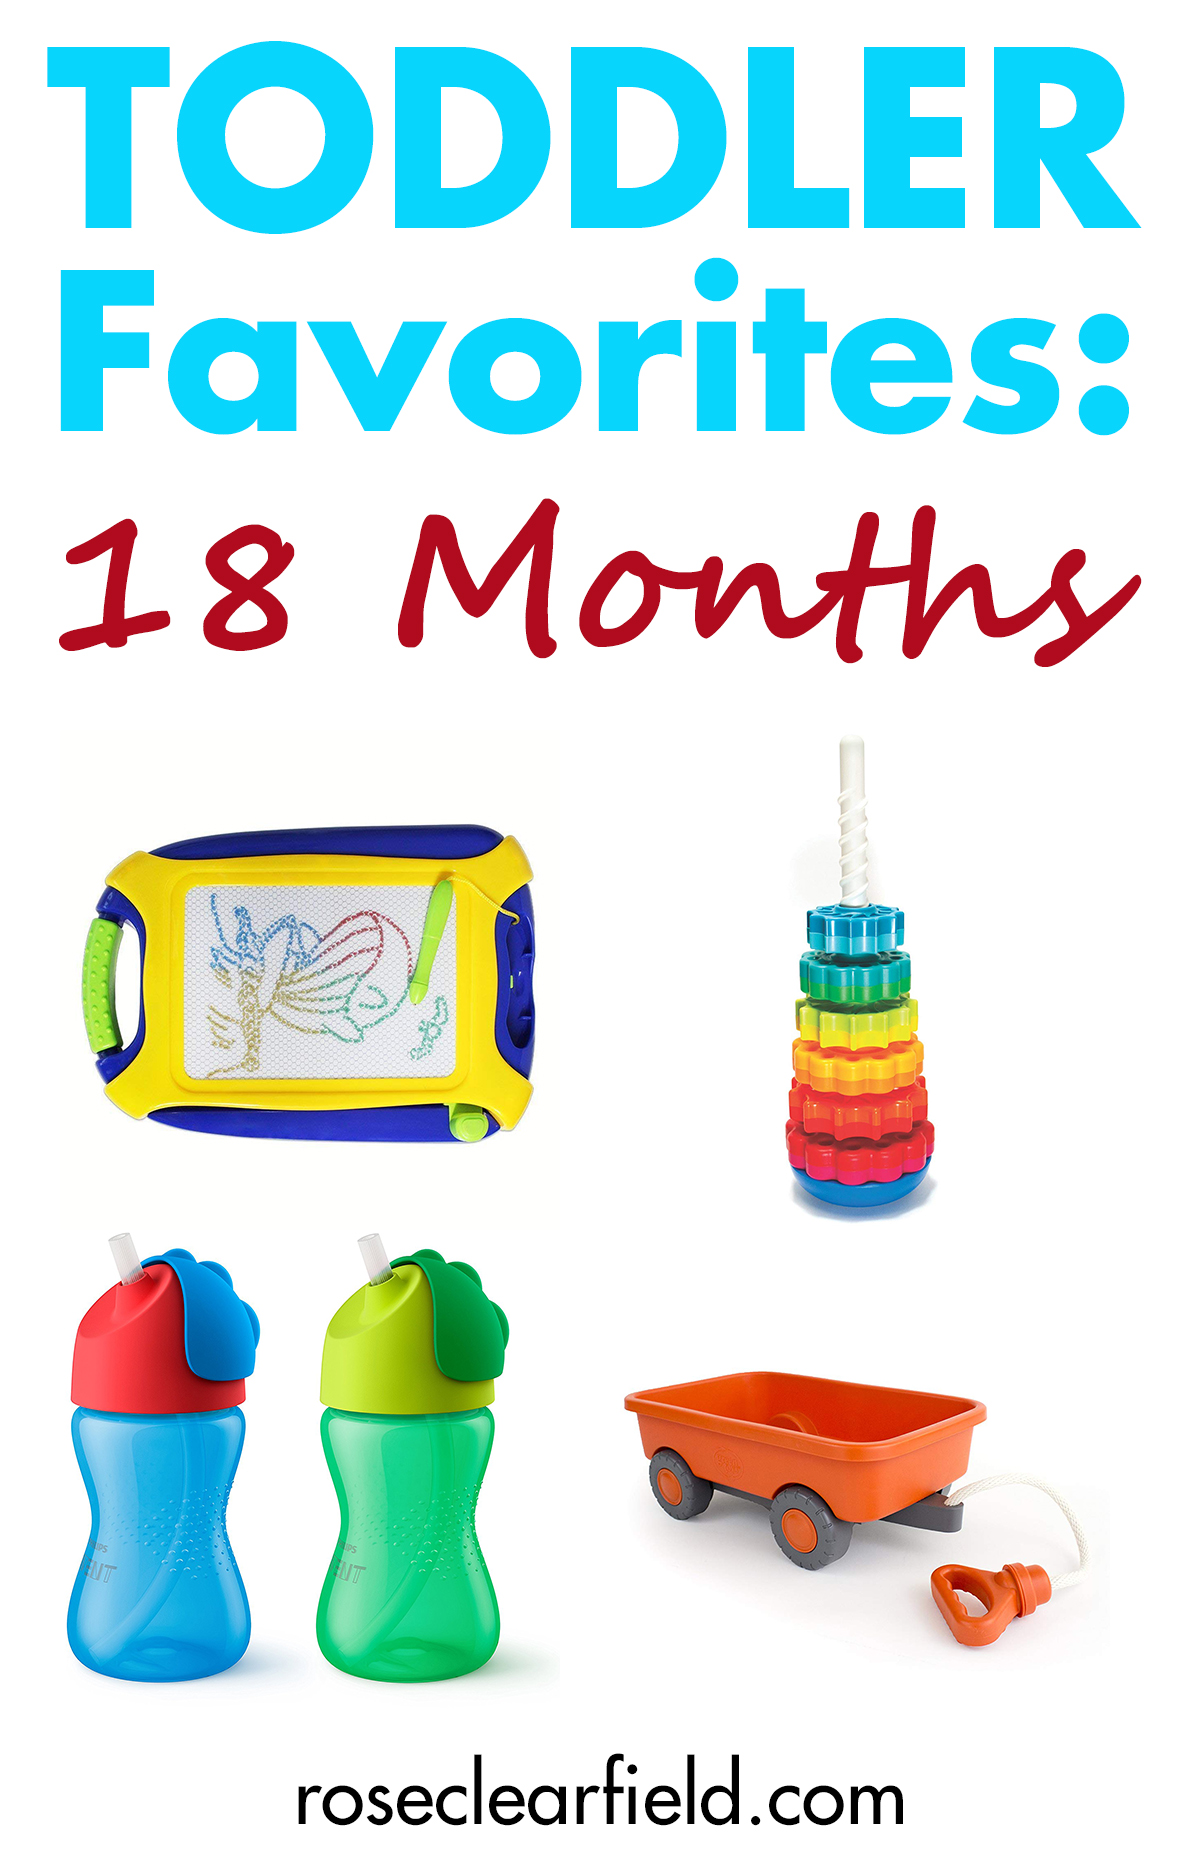 Toddler Favorites: 18 Months | http://www.roseclearfield.com